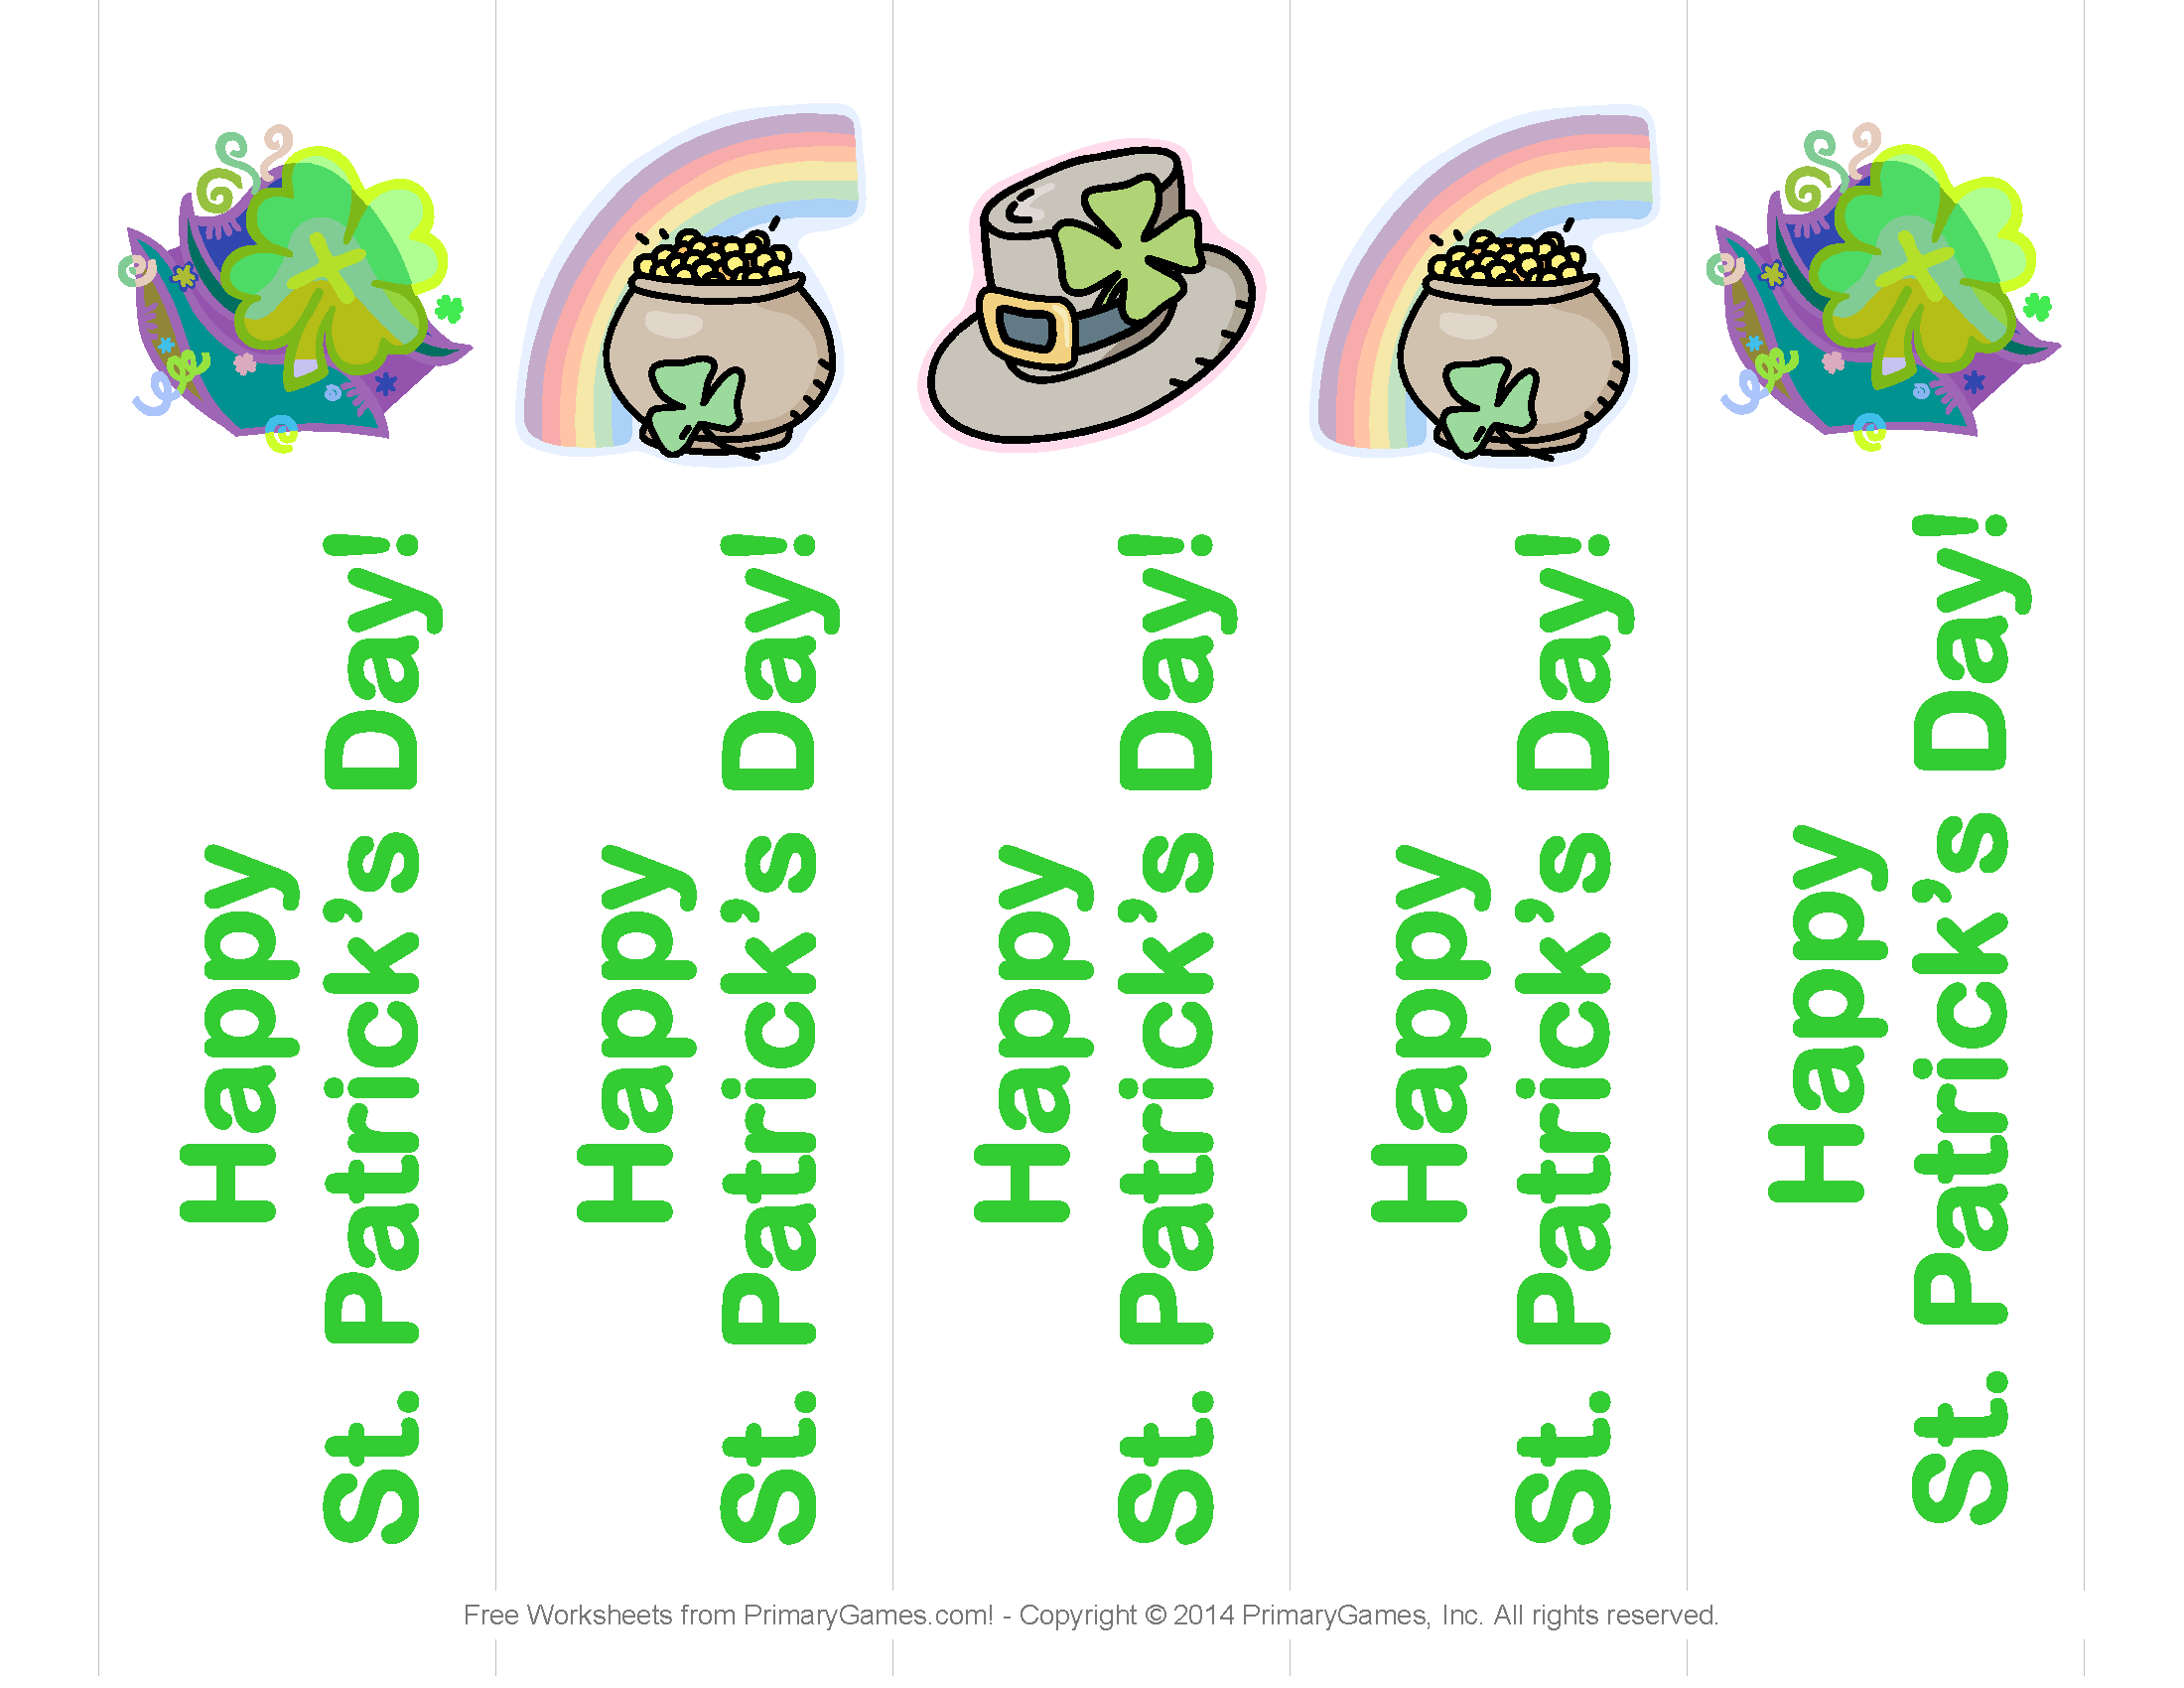 photograph regarding St Patrick's Day Worksheets Free Printable referred to as St. Patricks Working day Worksheets: St. Patricks Working day Bookmarks